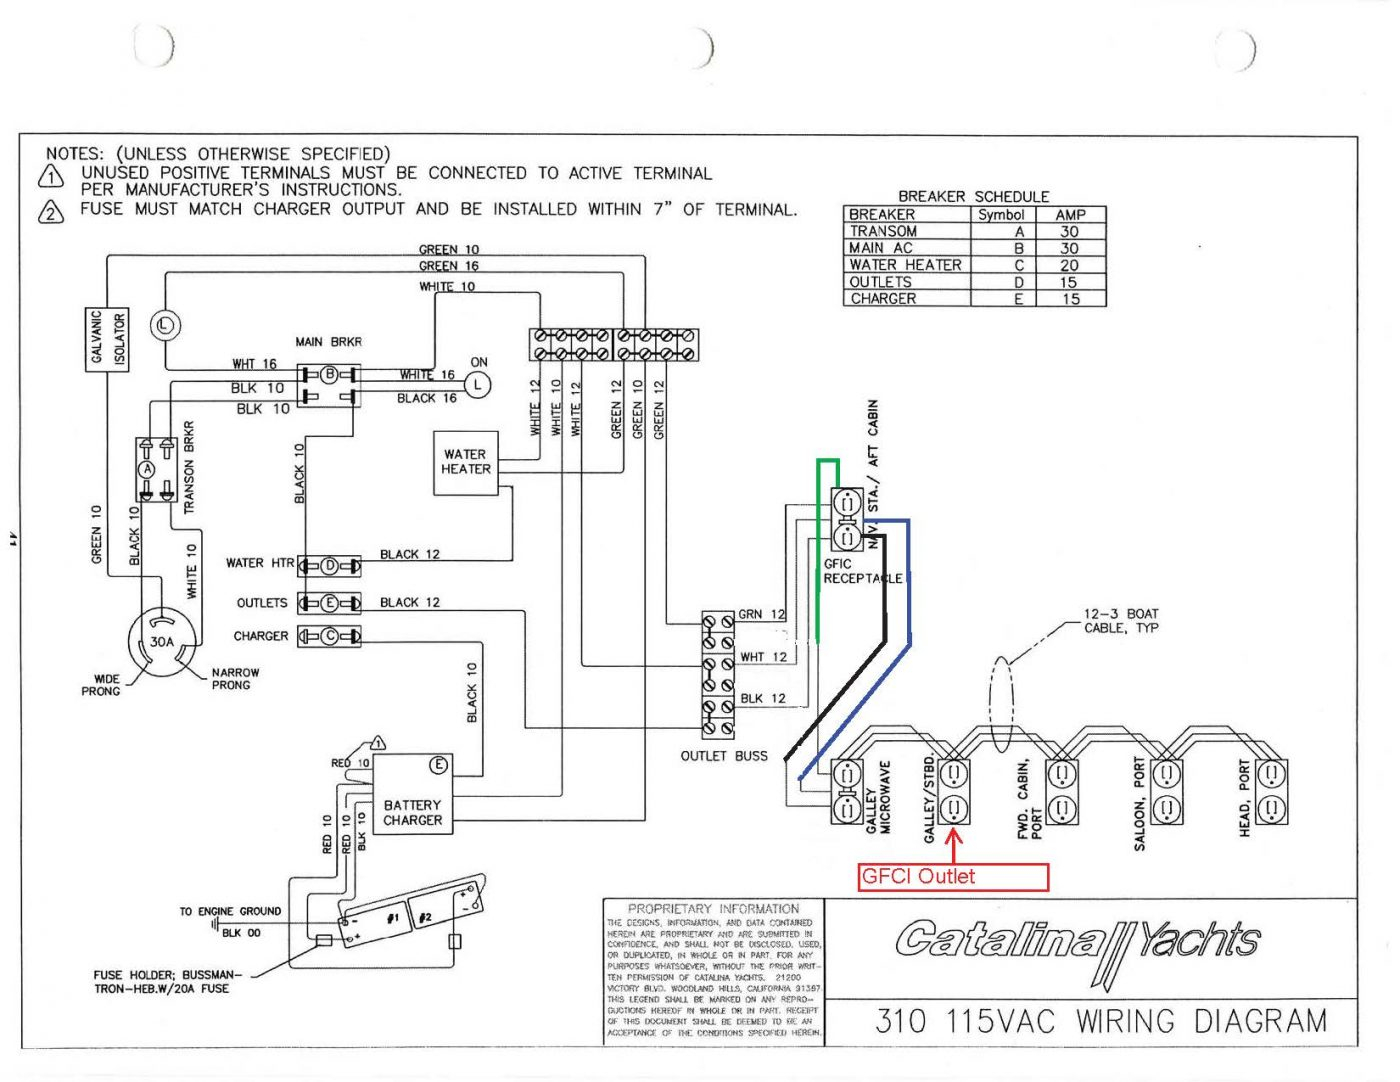 car air conditioning system wiring diagram pdf Collection-Car Air Conditioning System Wiring Diagram Beautiful Automotive Airing Wiring Diagram Pdf Car Systemer Pressor Air 10-k